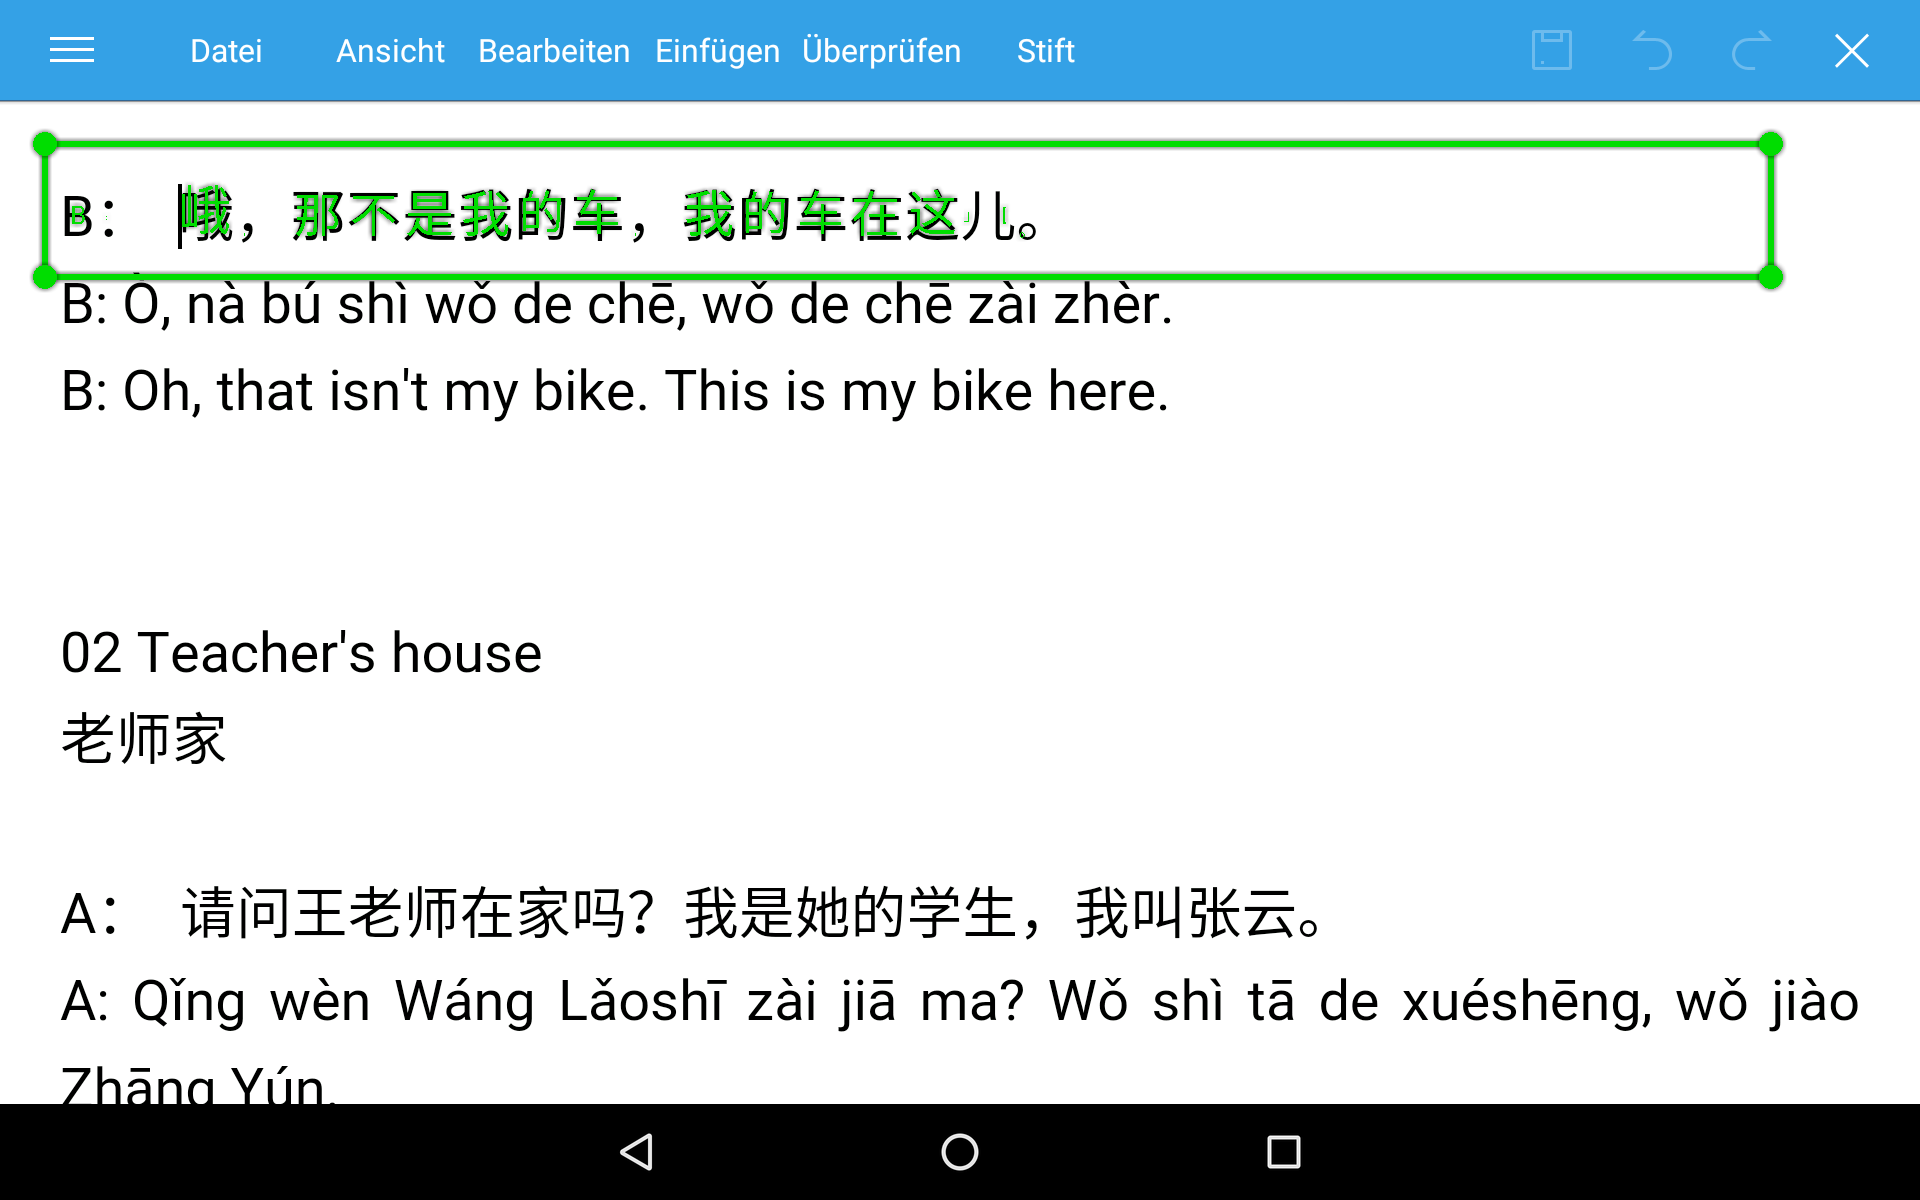 Screen-OCR-floating-button does not recognize a character 儿